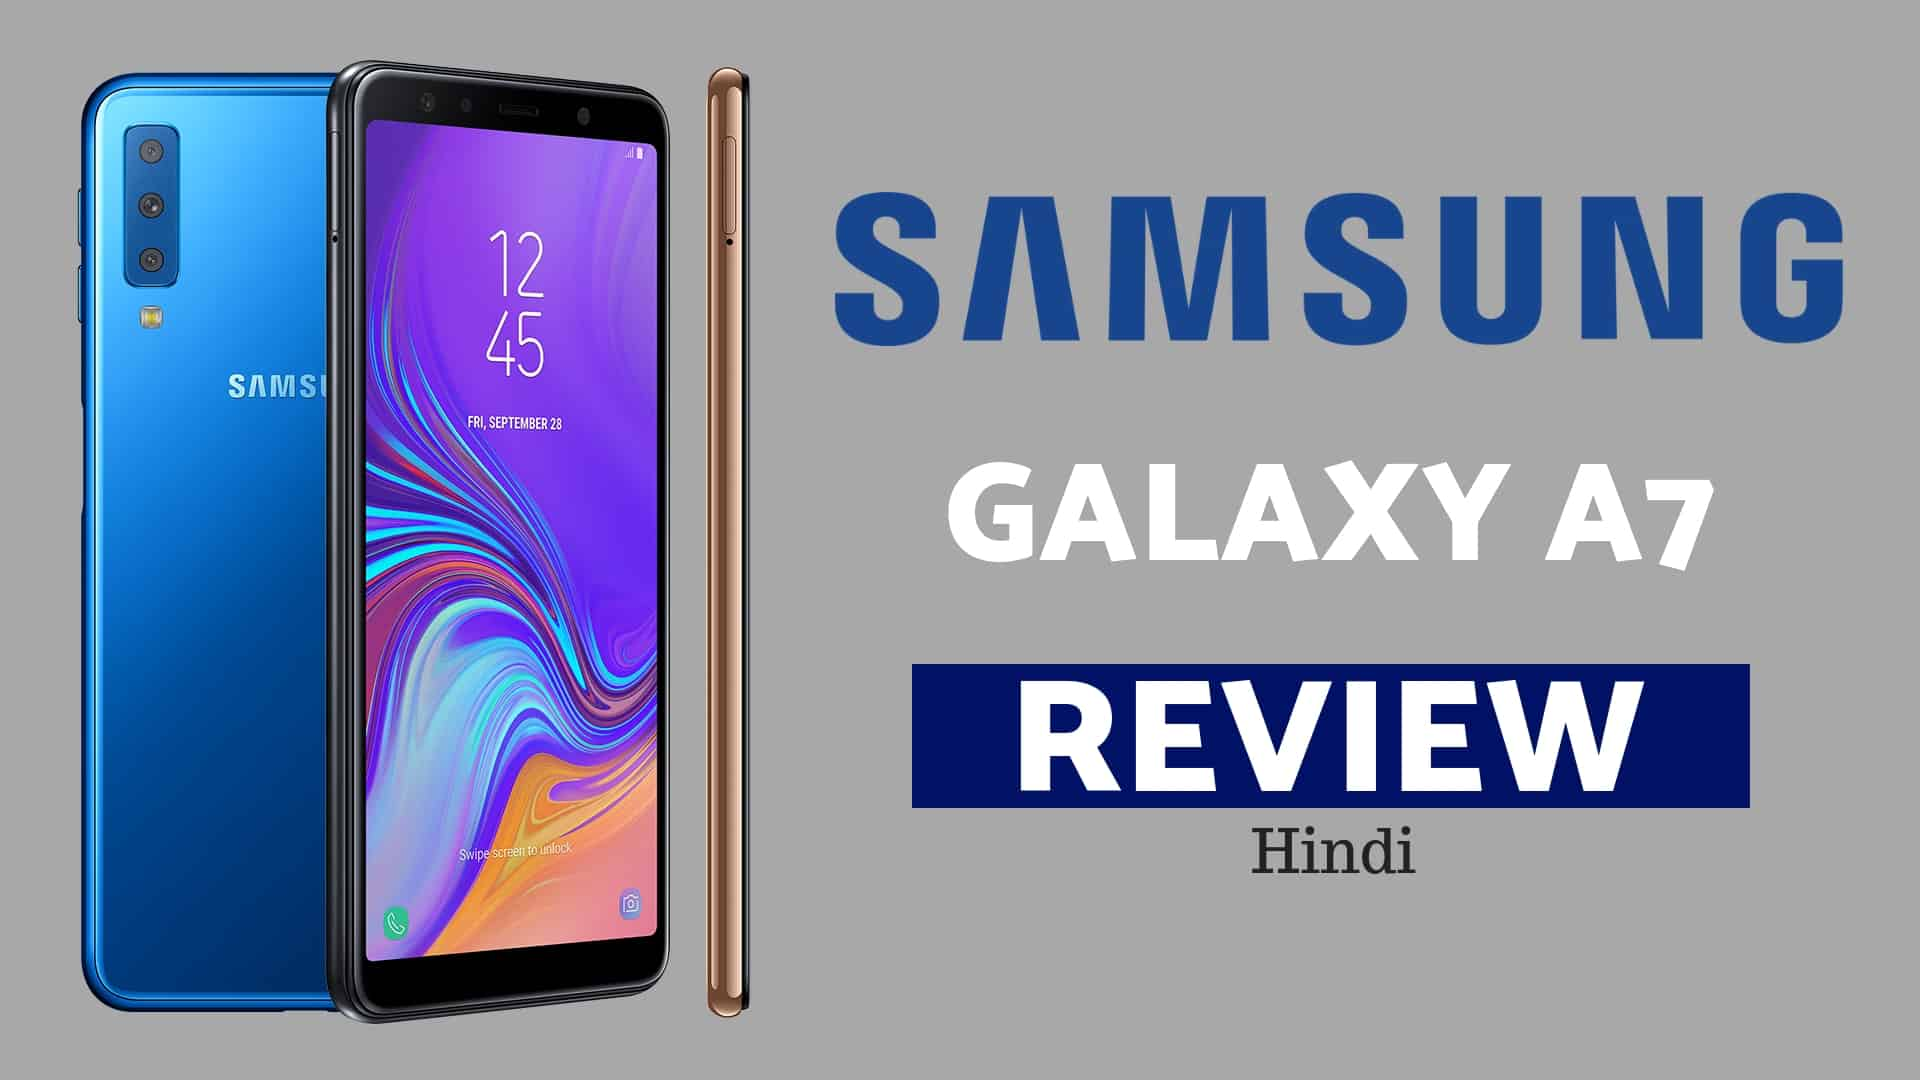 GALAXY A7 review in hindi